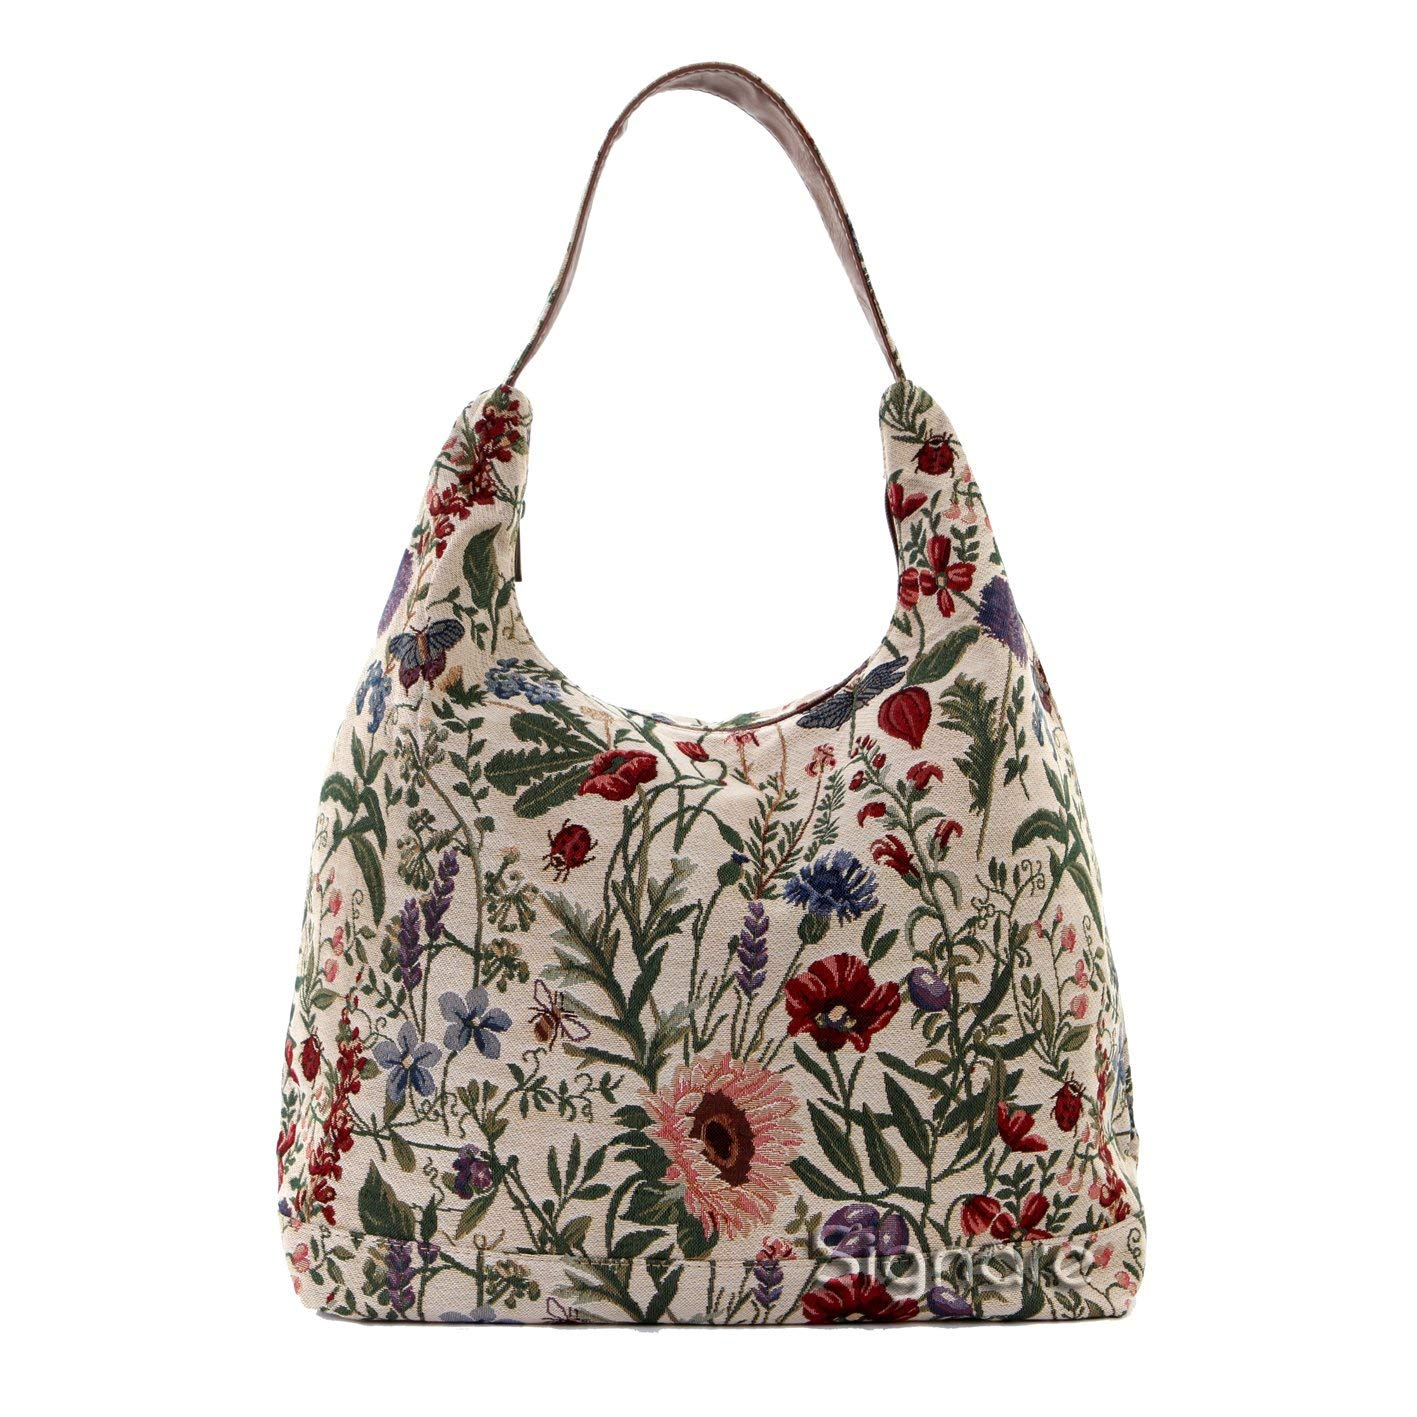 84f72d6954 Get Quotations · Signare Tapestry Women s Top Zip Hobo Shoulder Bag with  Sunflower Poppy Butterfly and Dragonfly (HOBO